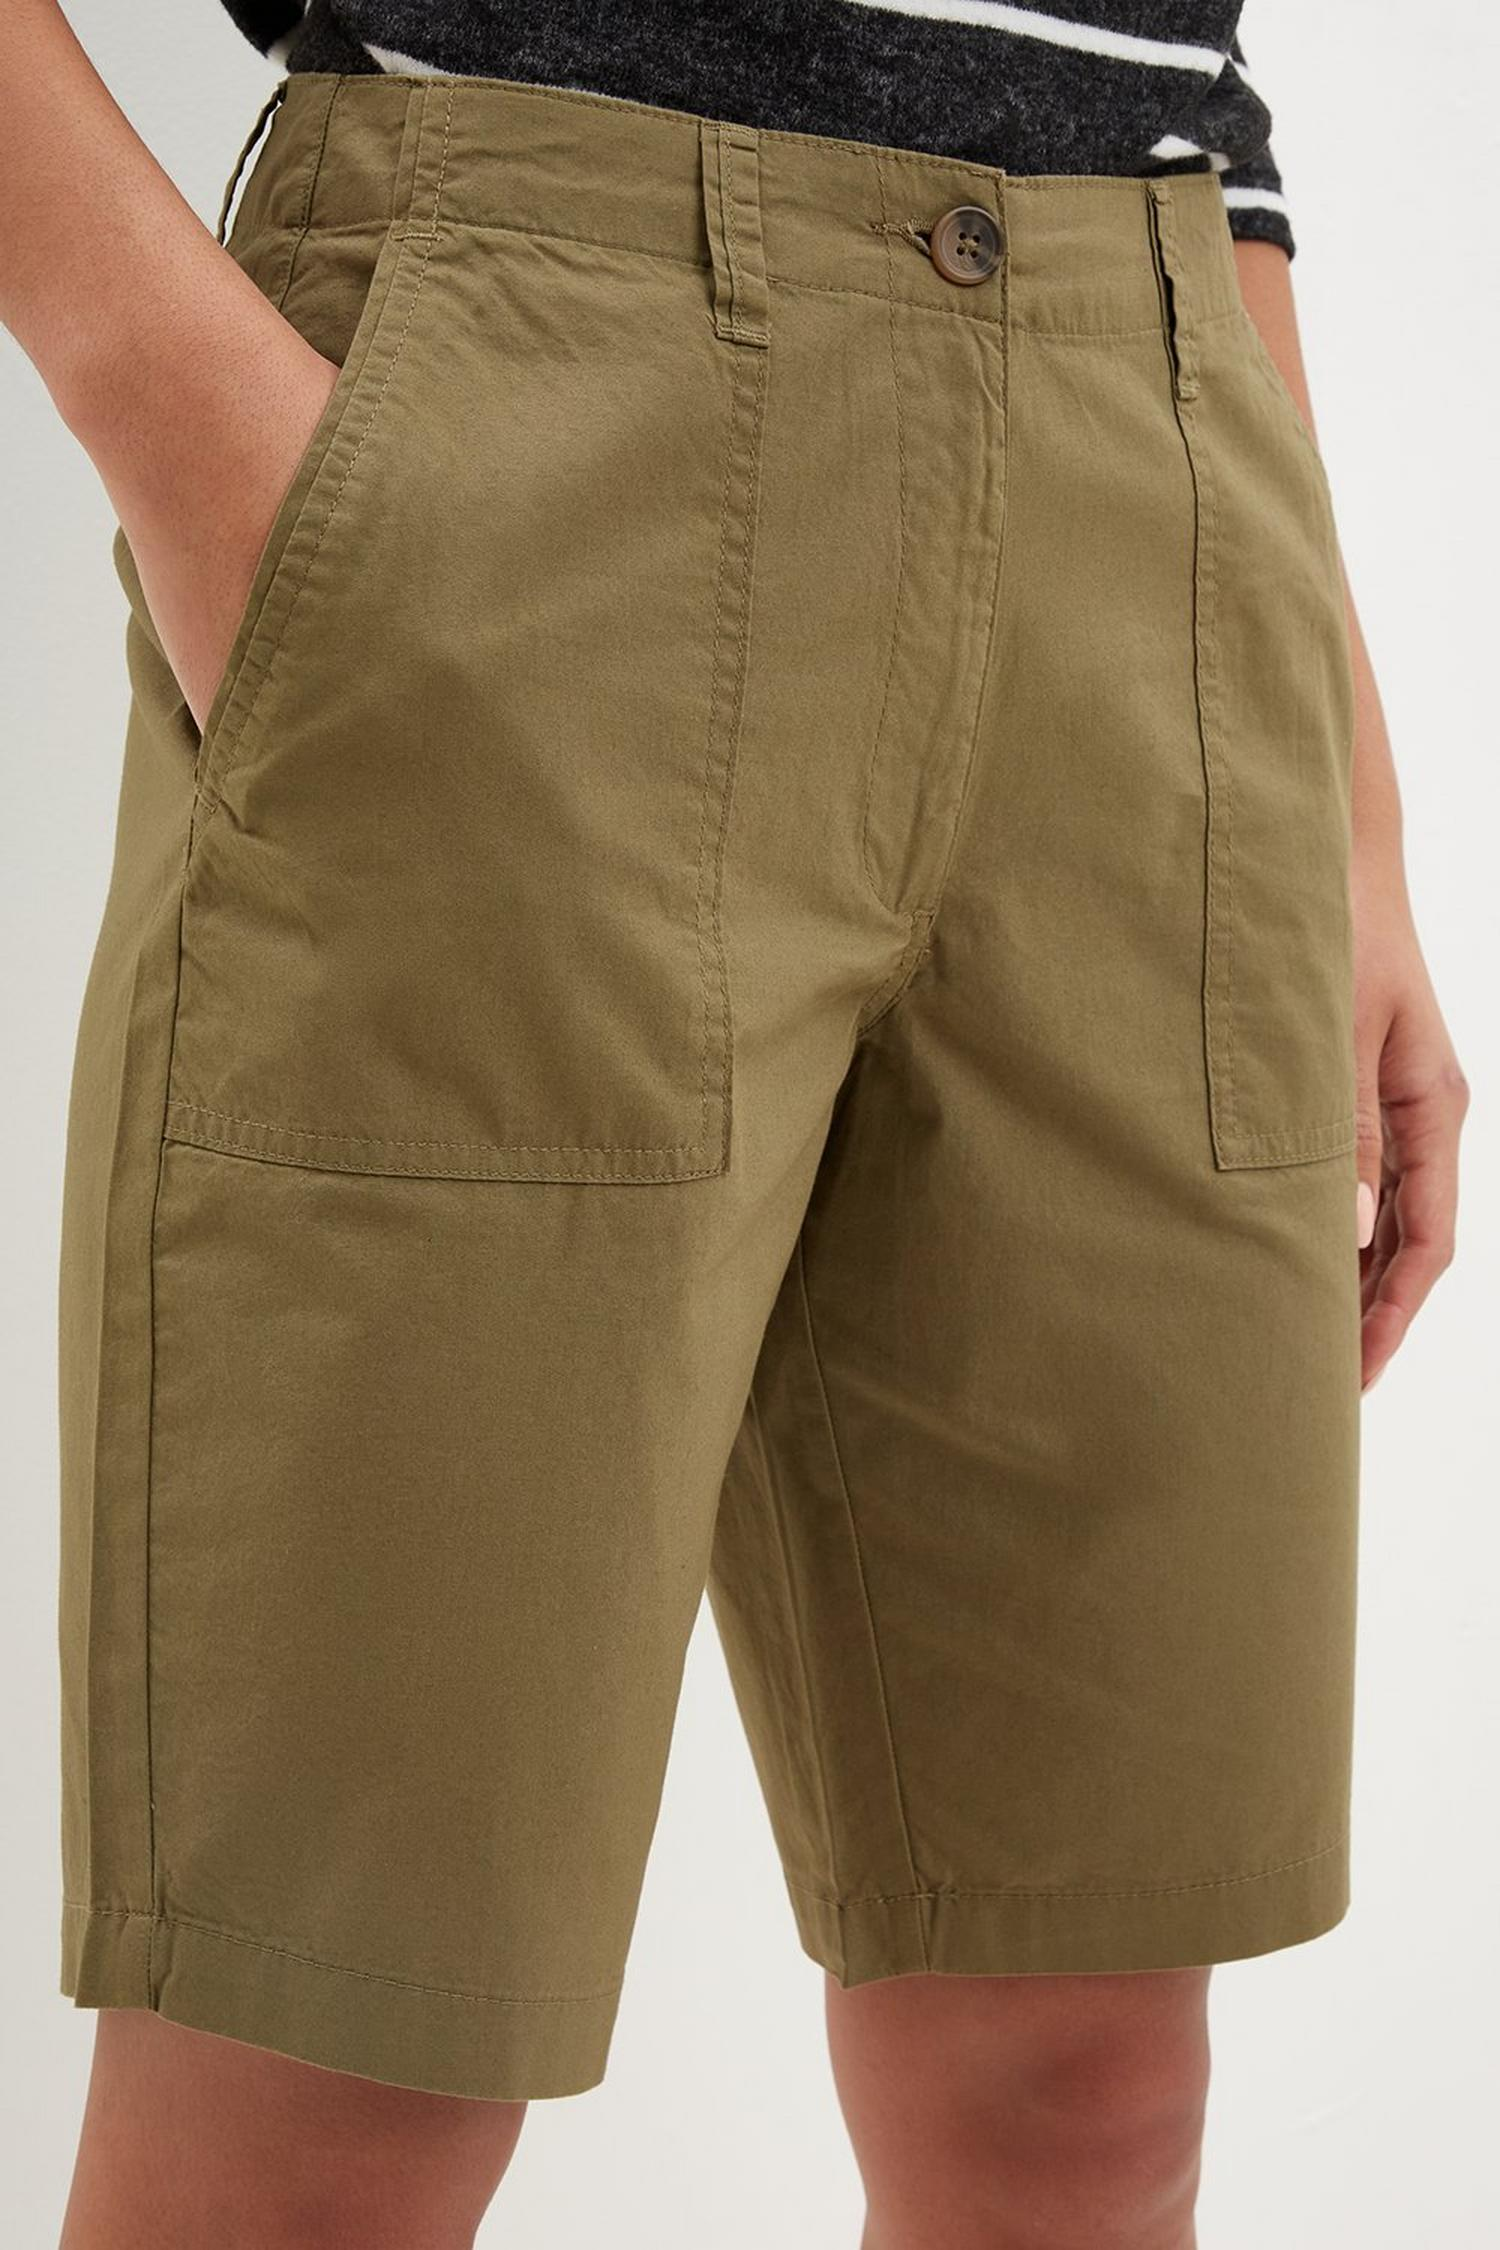 130 Khaki Poplin Knee Shorts image number 4